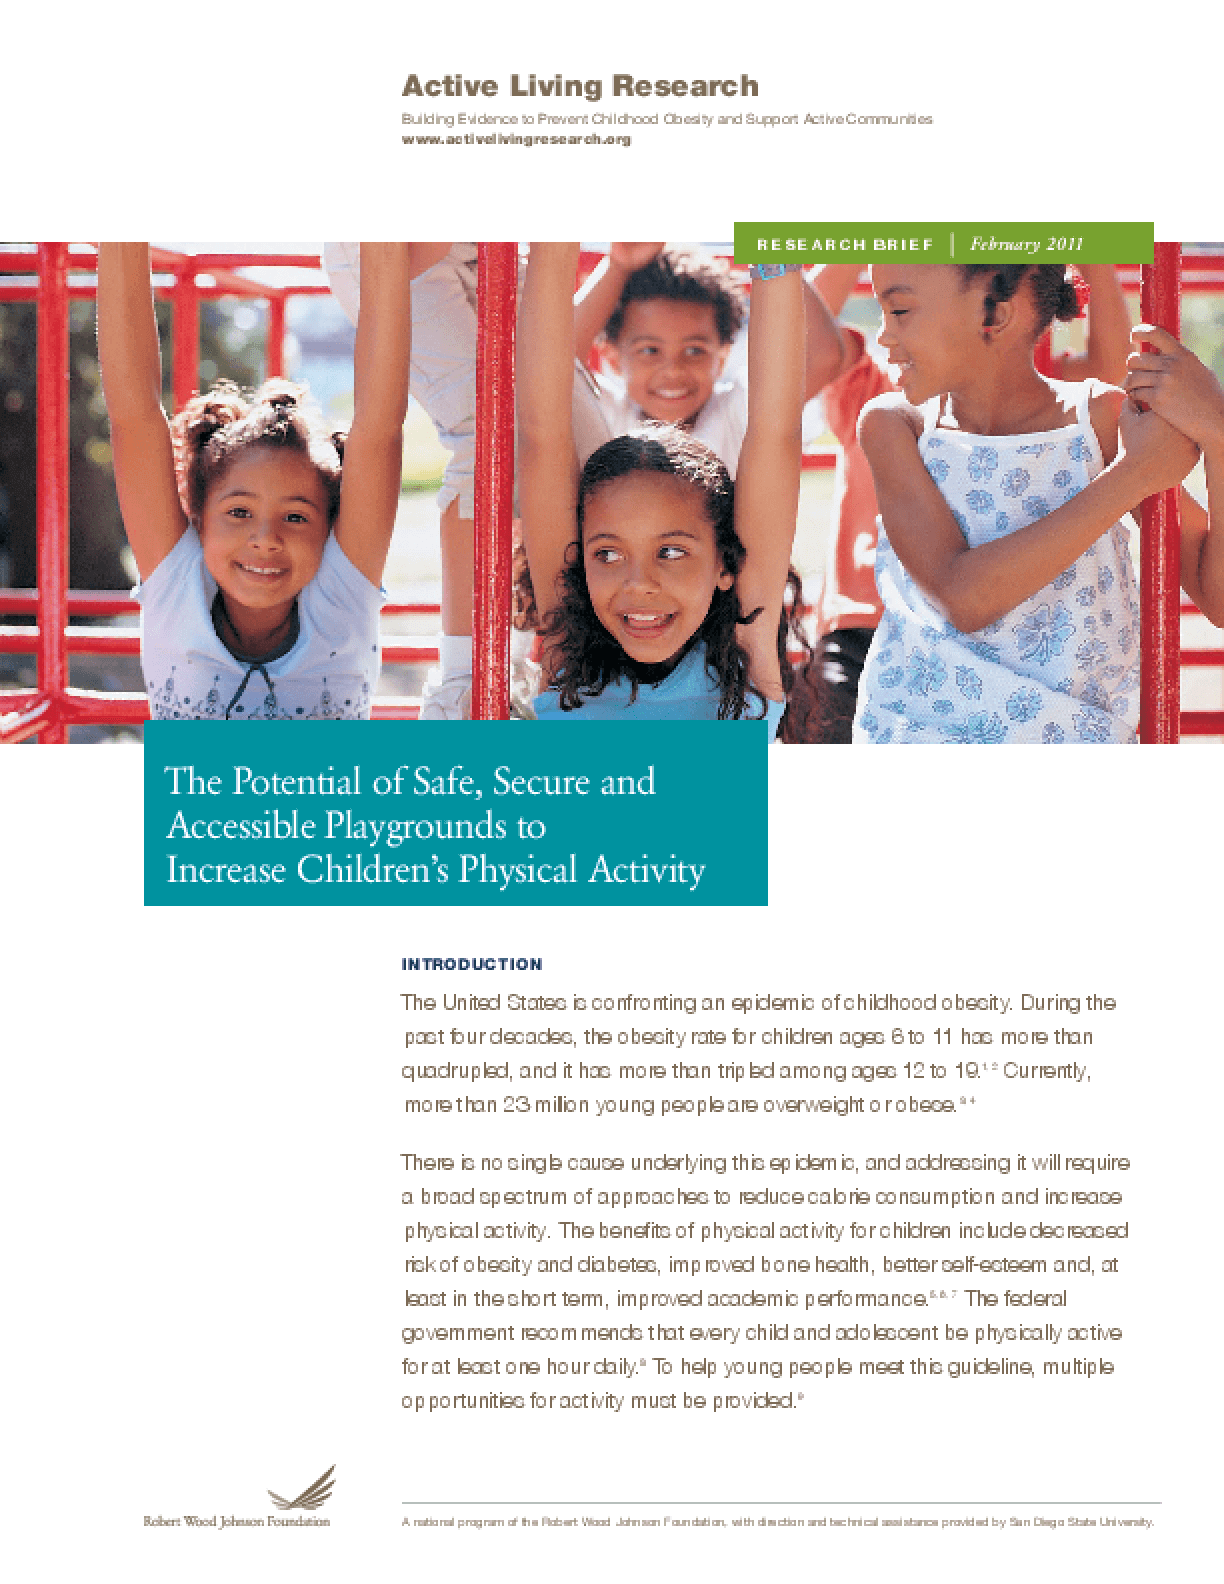 The Potential of Safe, Secure and Accessible Playgrounds to Increase Children's Physical Activity